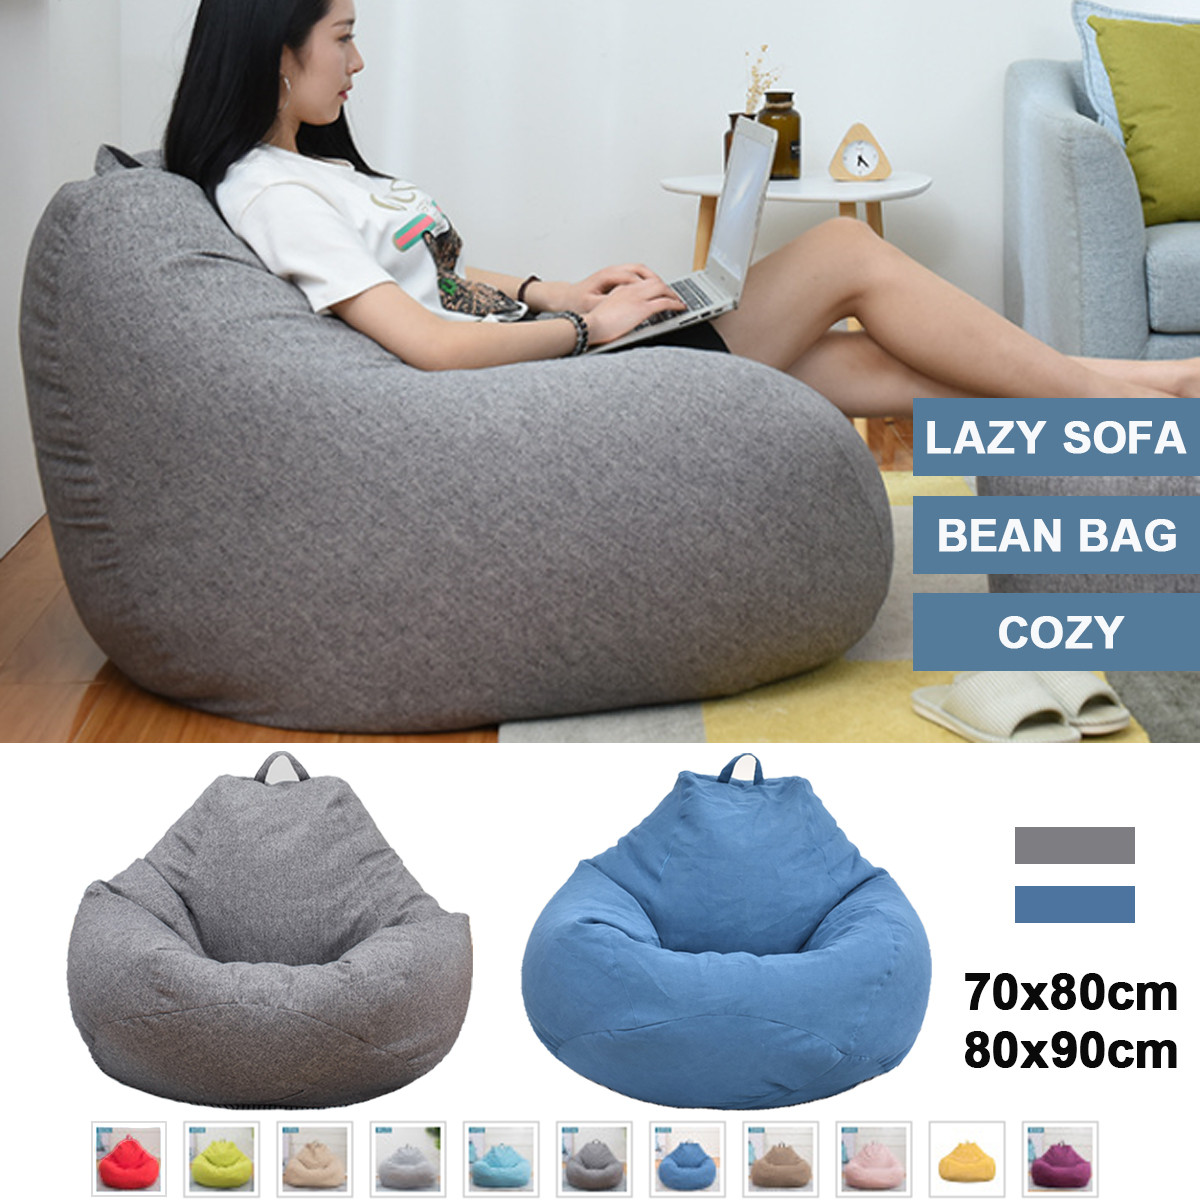 Pleasing No Filling Adults Large Bean Bag Chairs Sofa Cover Indoor Ibusinesslaw Wood Chair Design Ideas Ibusinesslaworg